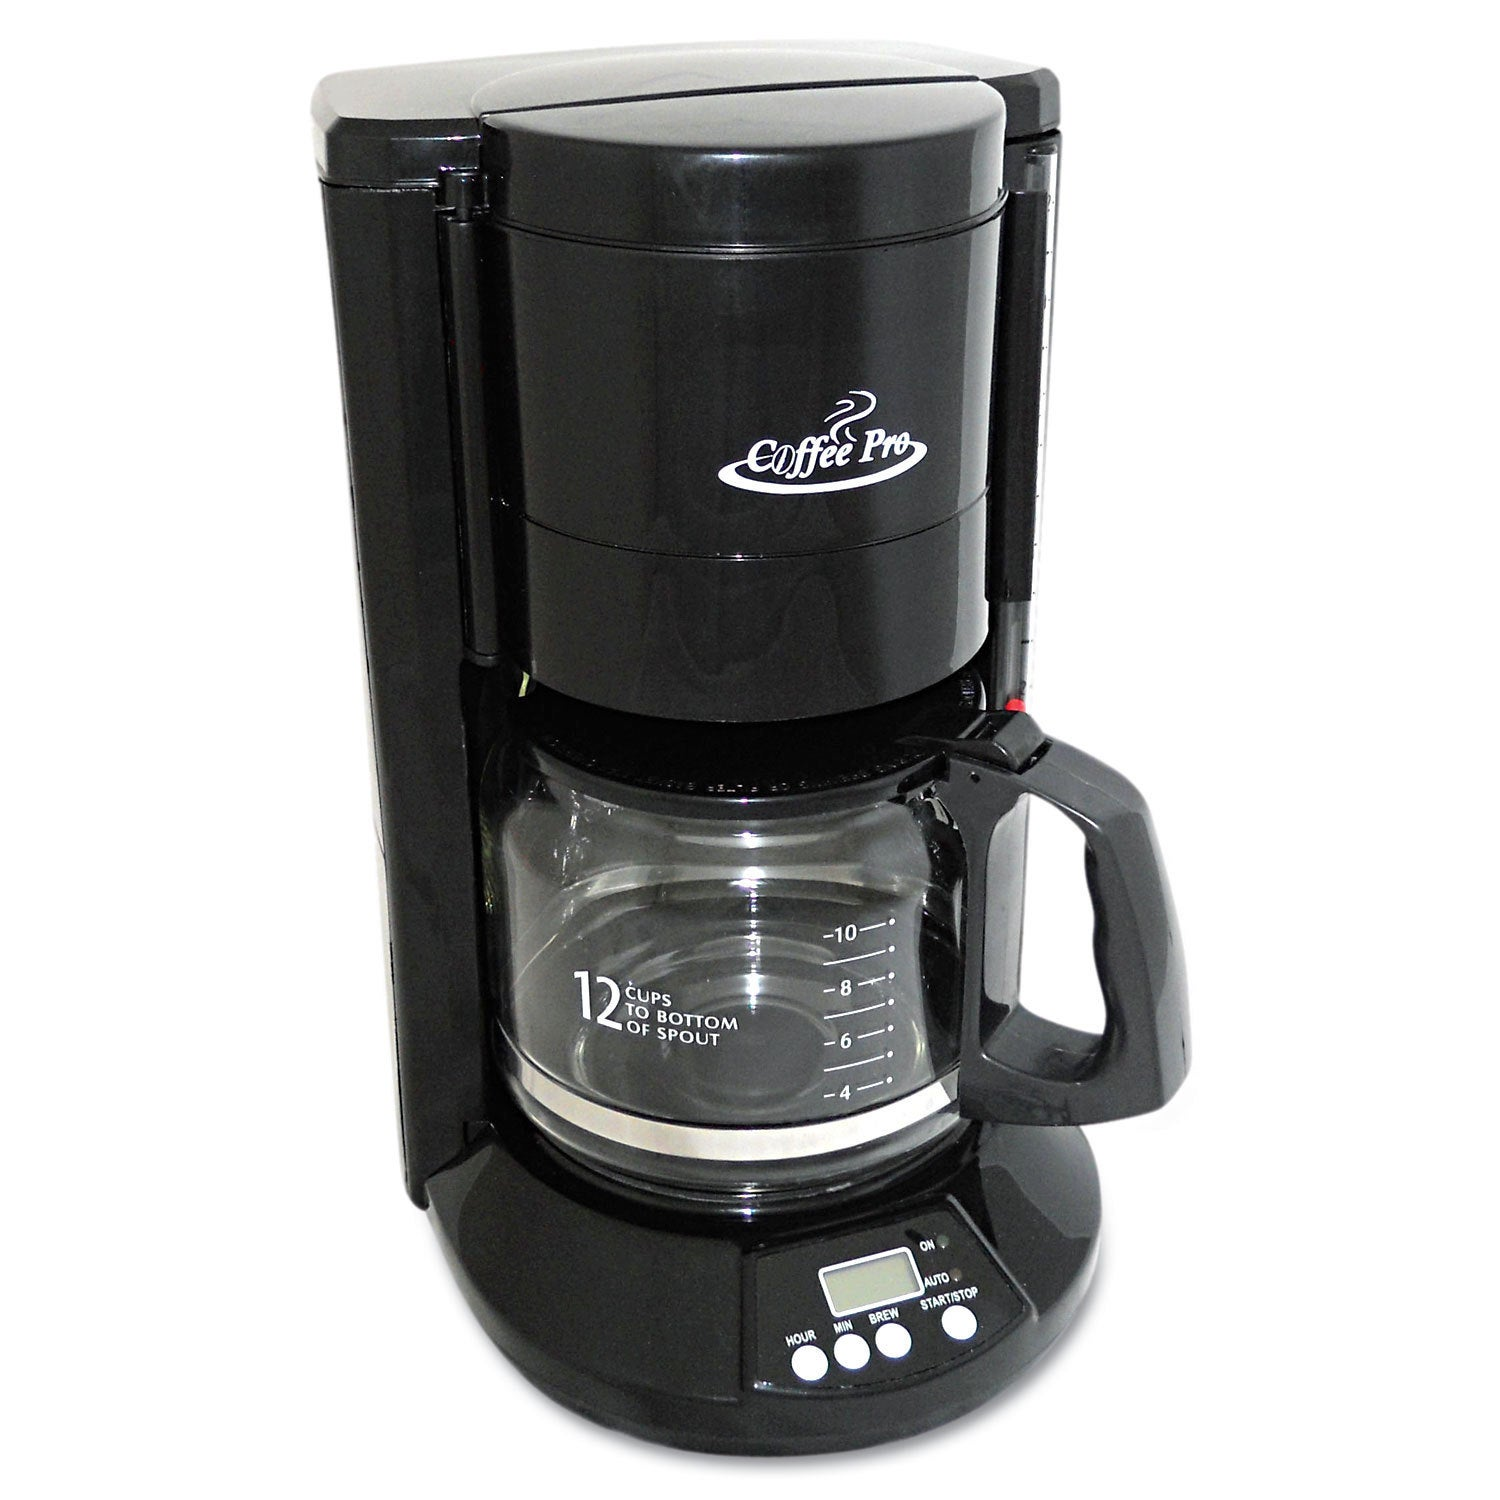 CoffeePro Coffee Pro Home/Office 12-Cup Black Coffee Make...